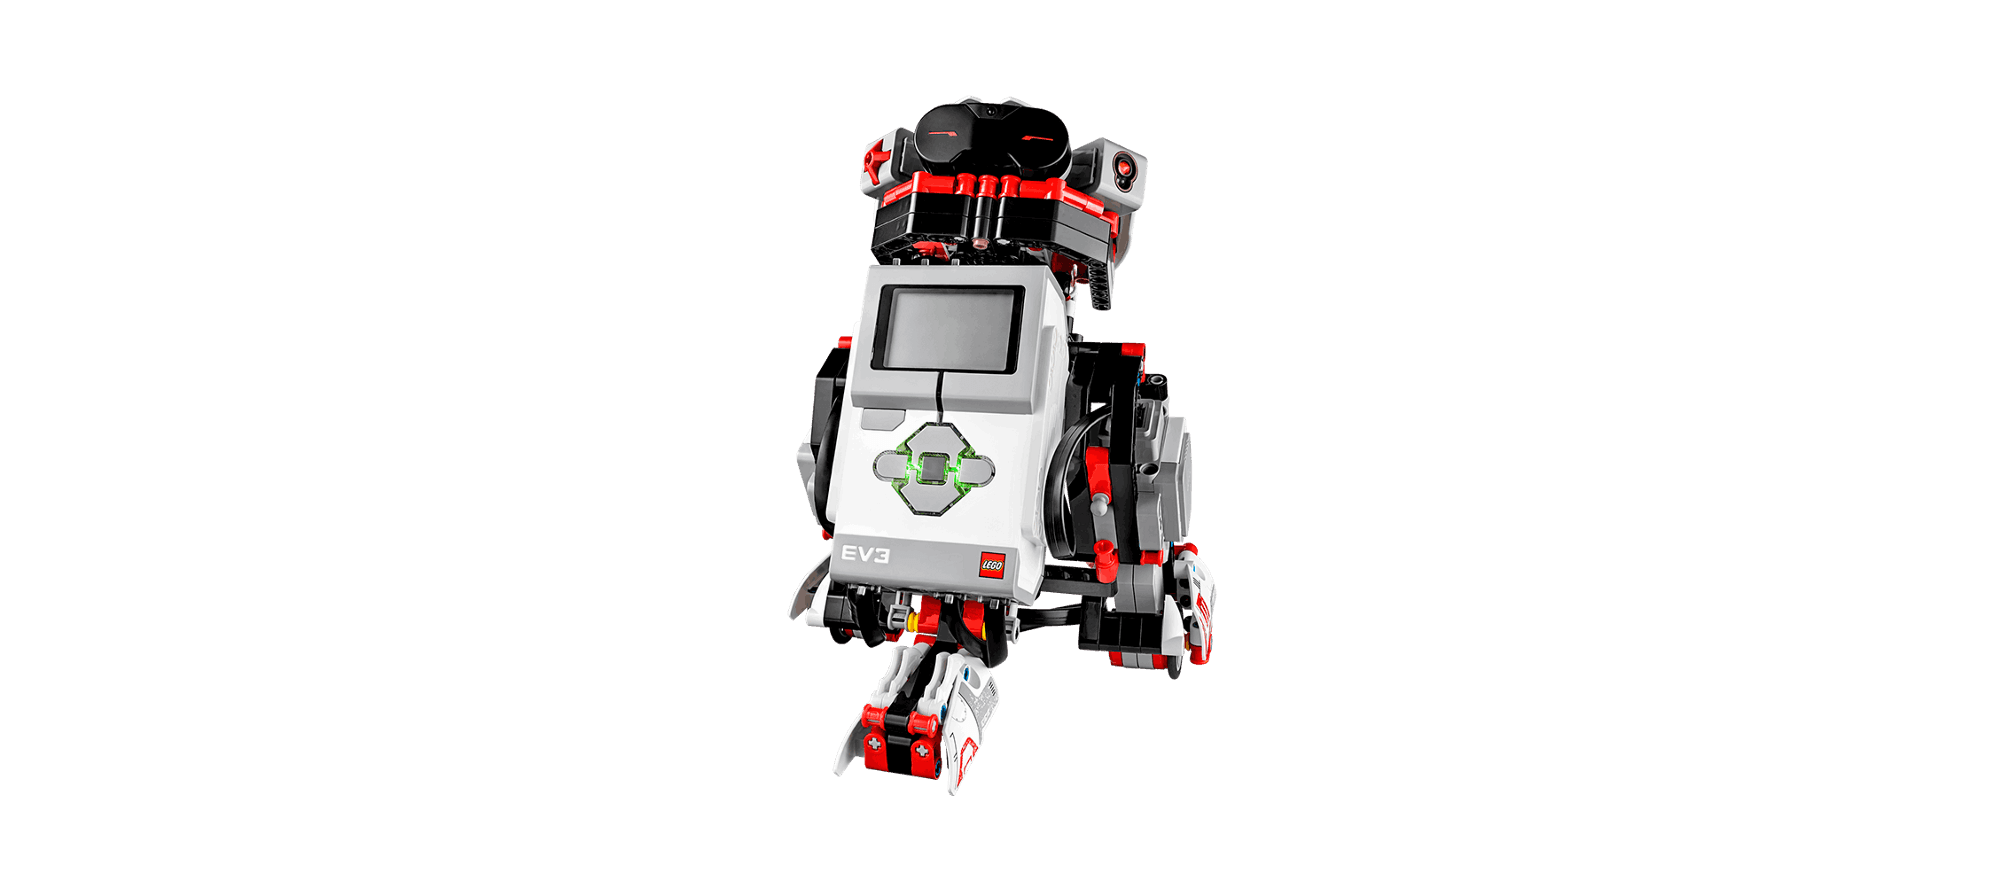 For example this robot can interact with you via the IR Beacon. It supports a wide set of sensors that can easily be programmed or extended in the EV3Dev Image.